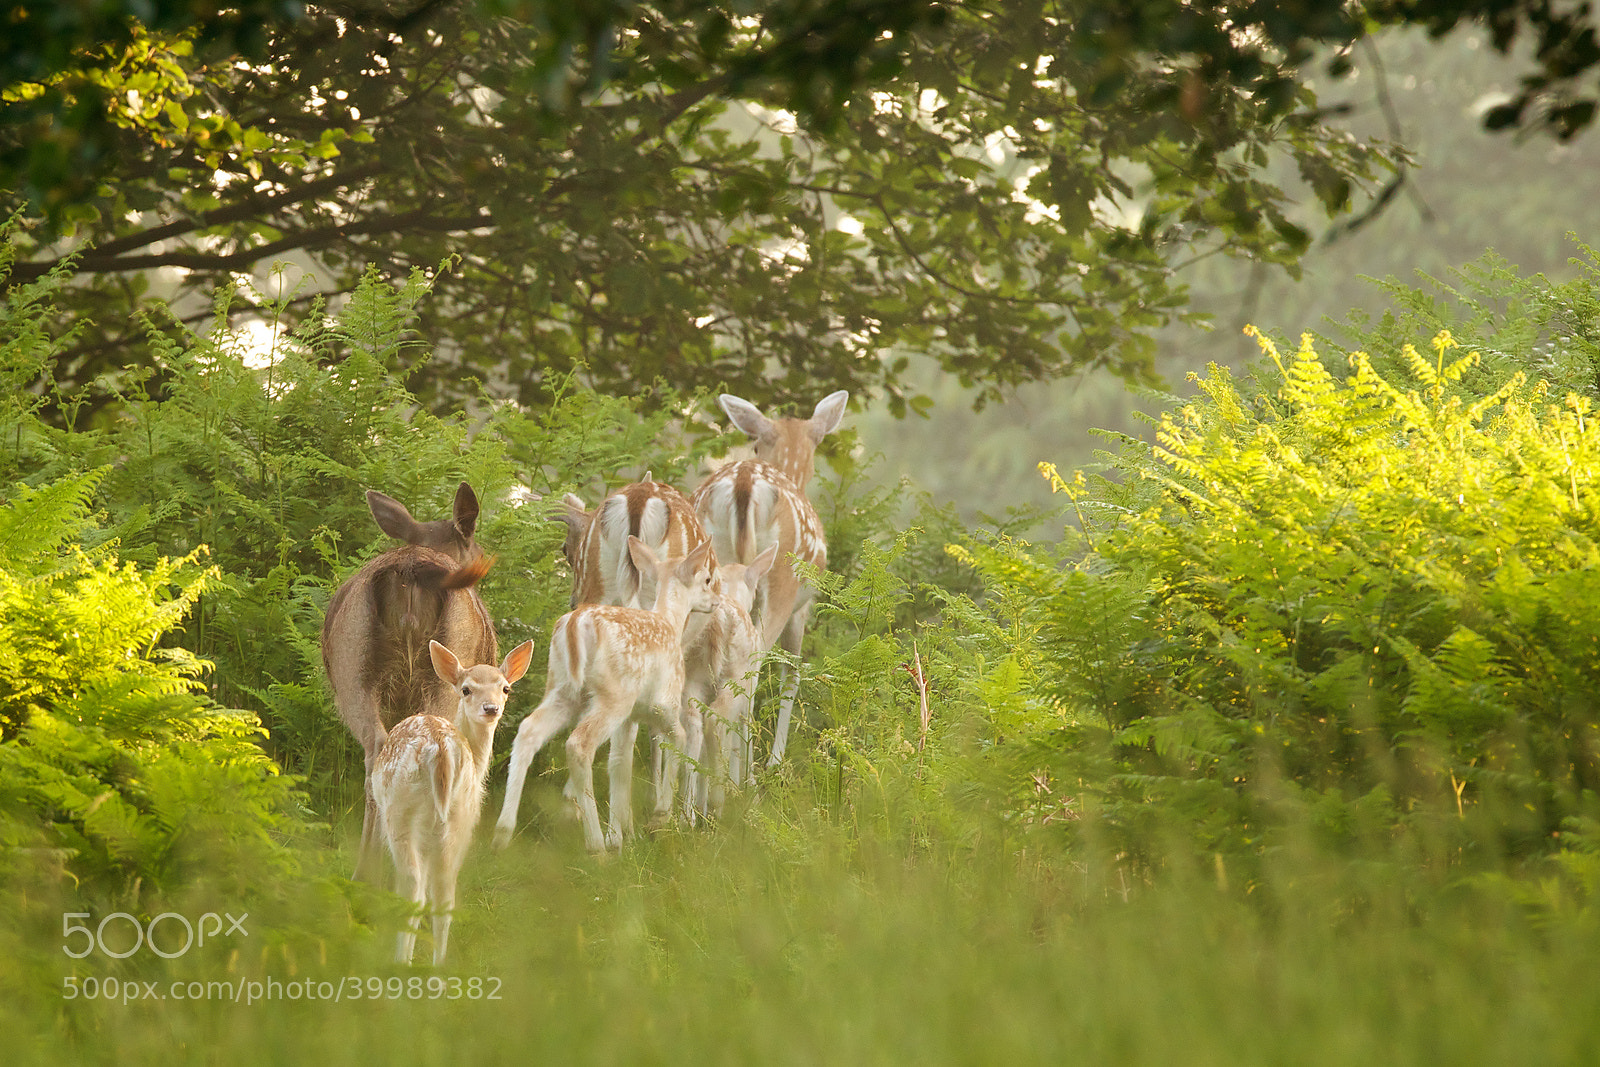 Photograph erm mum there's a man following us... by Mark Bridger on 500px